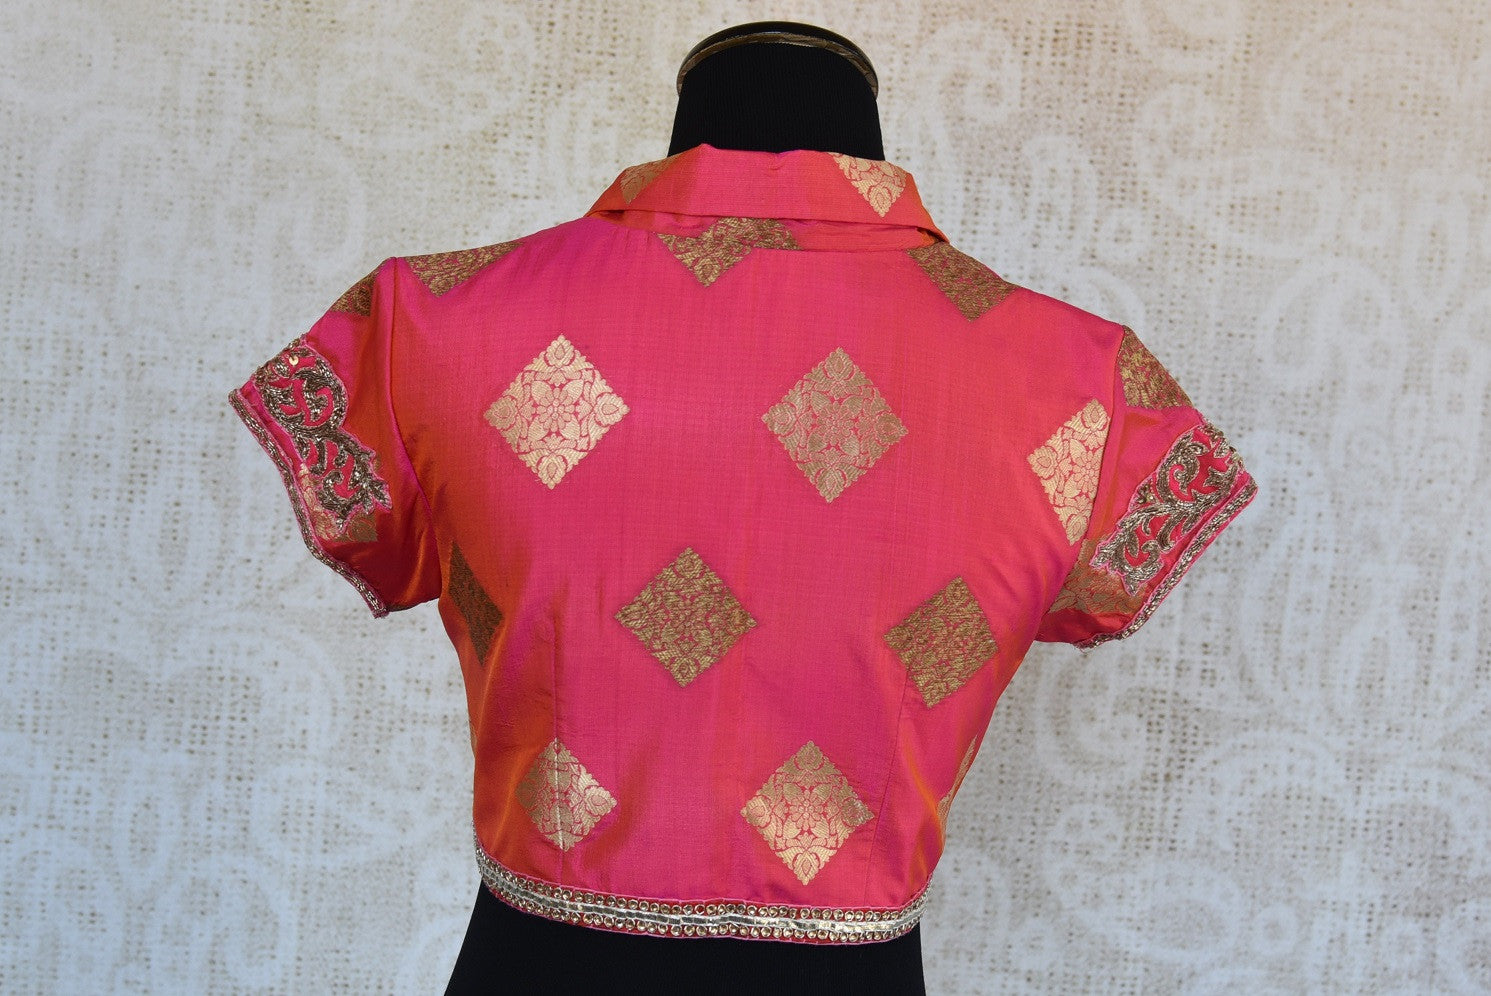 Shop this traditional Indian embroidered banarasi designer blouse from Pure Elegance online or from our store in USA. Perfect for any wedding or reception party. Back View.